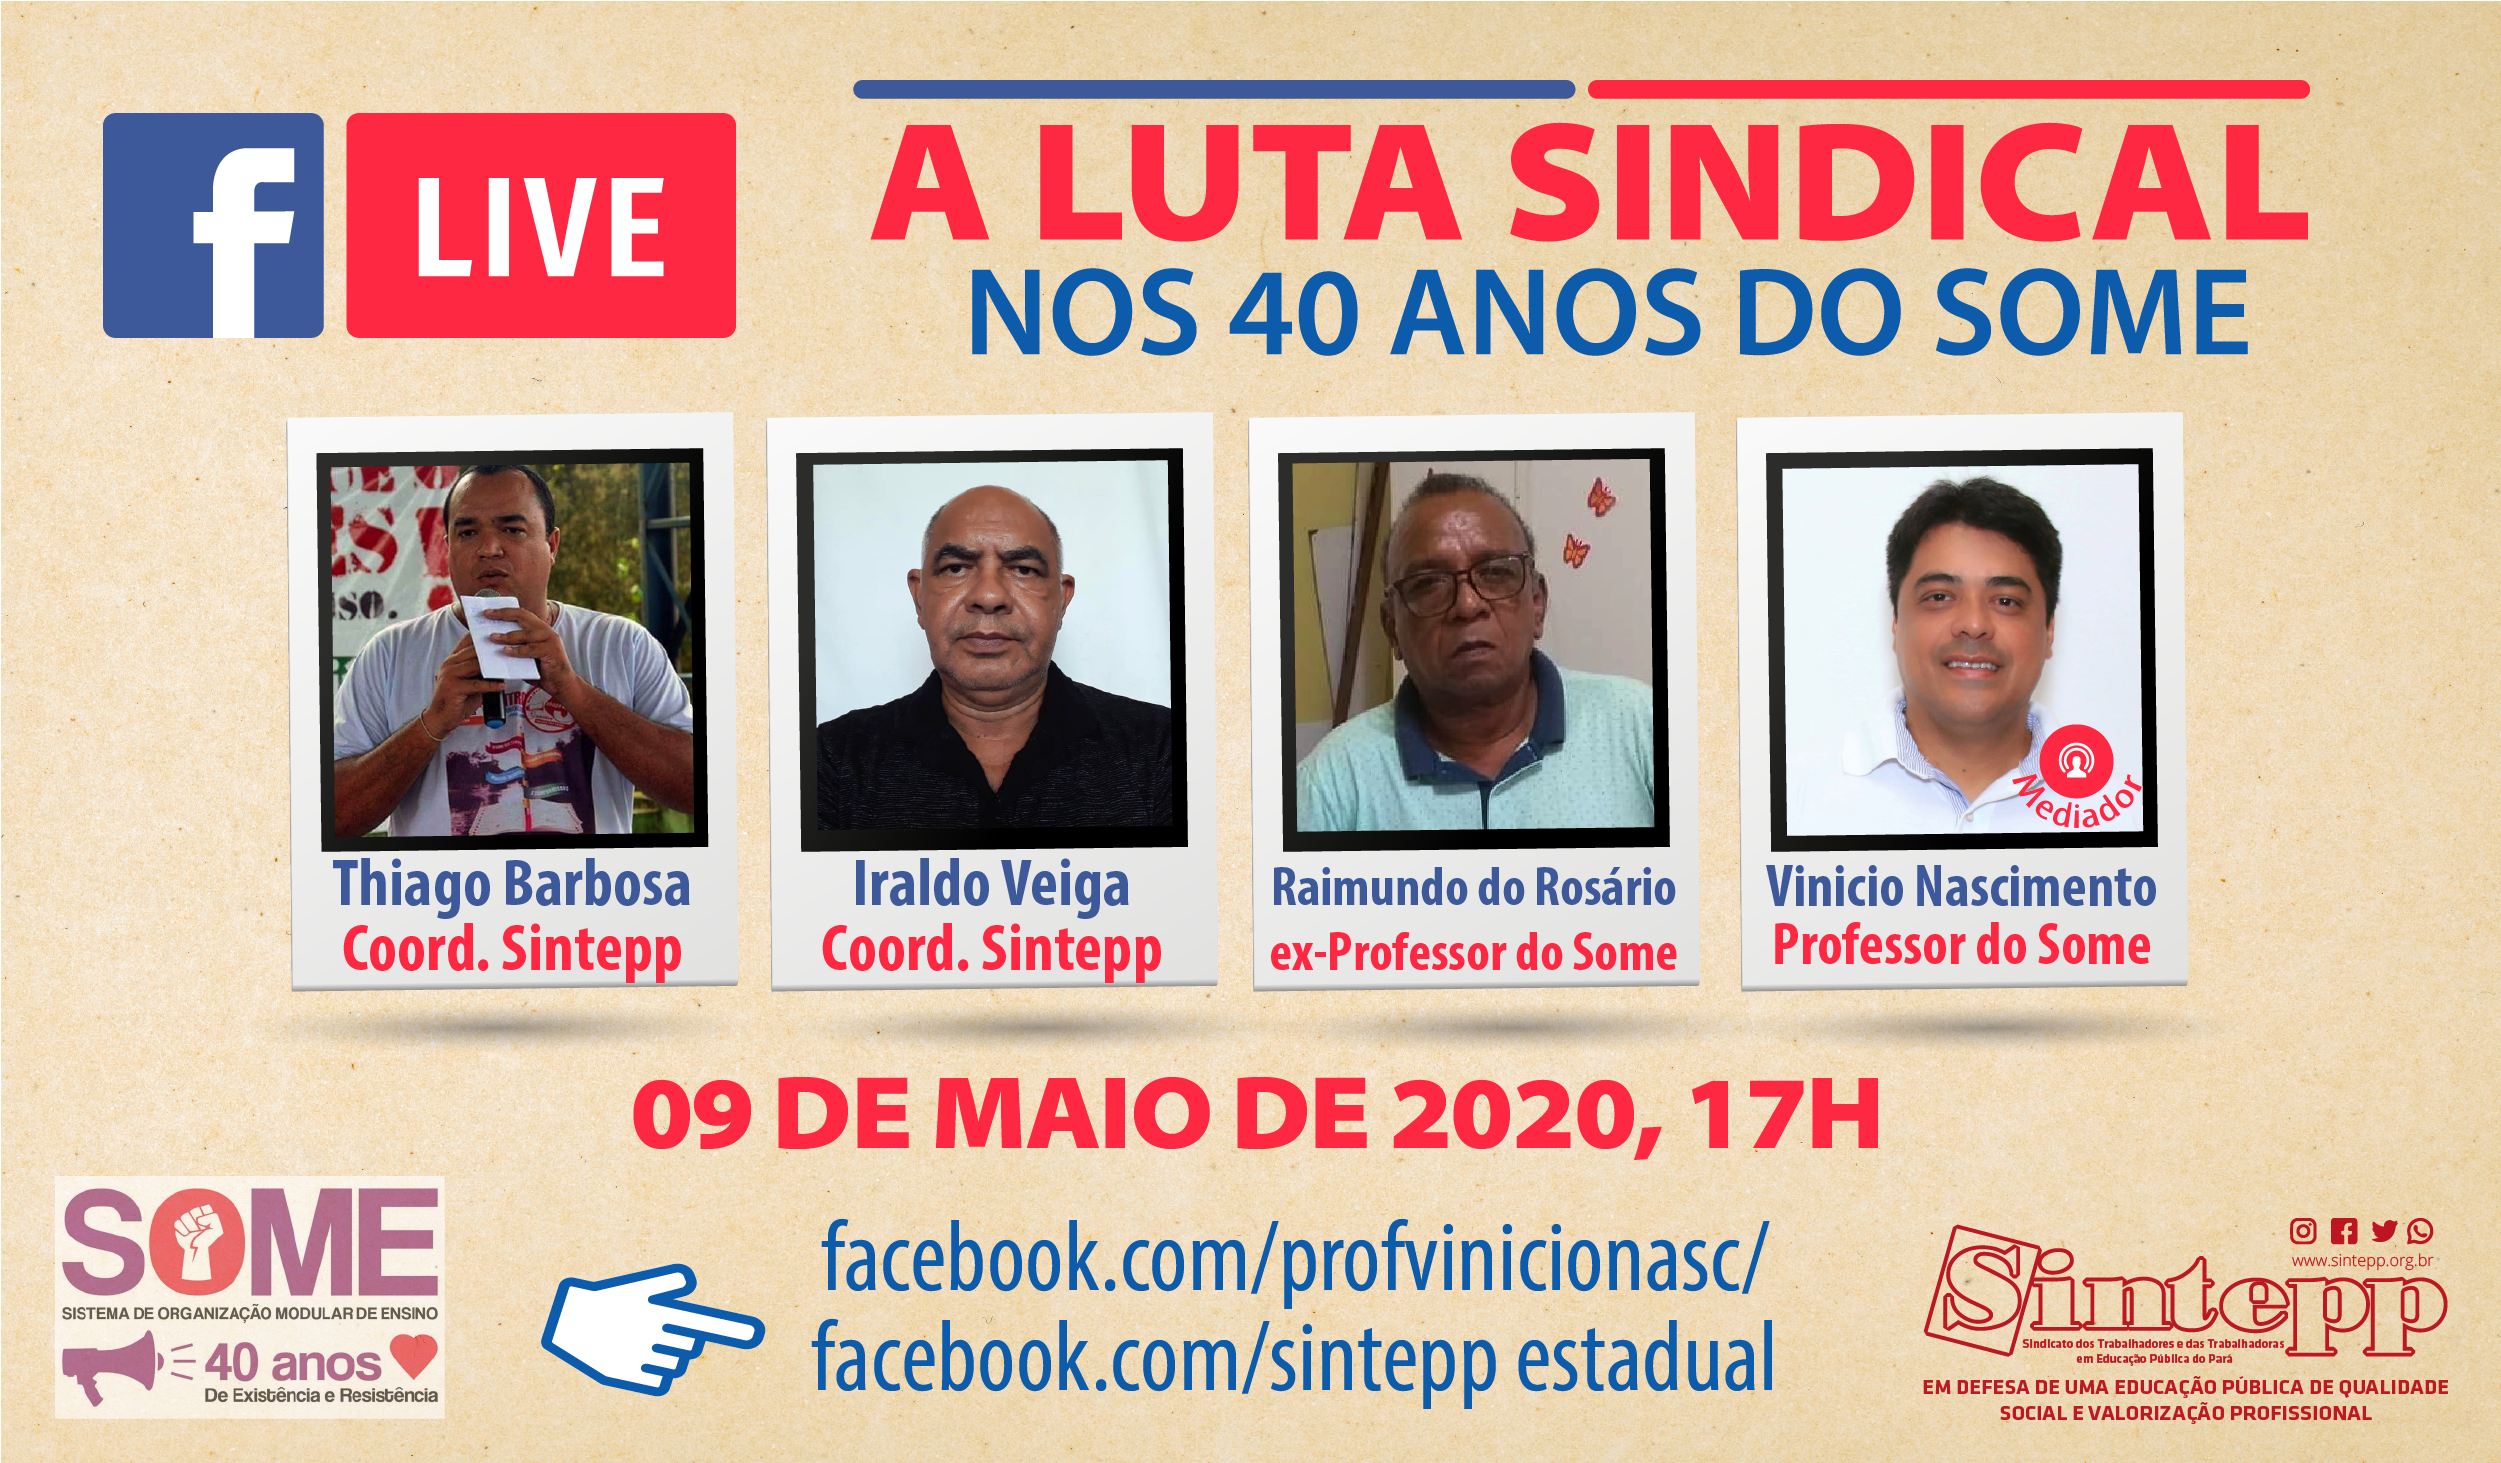 A luta Sindical nos 40 anos do Some